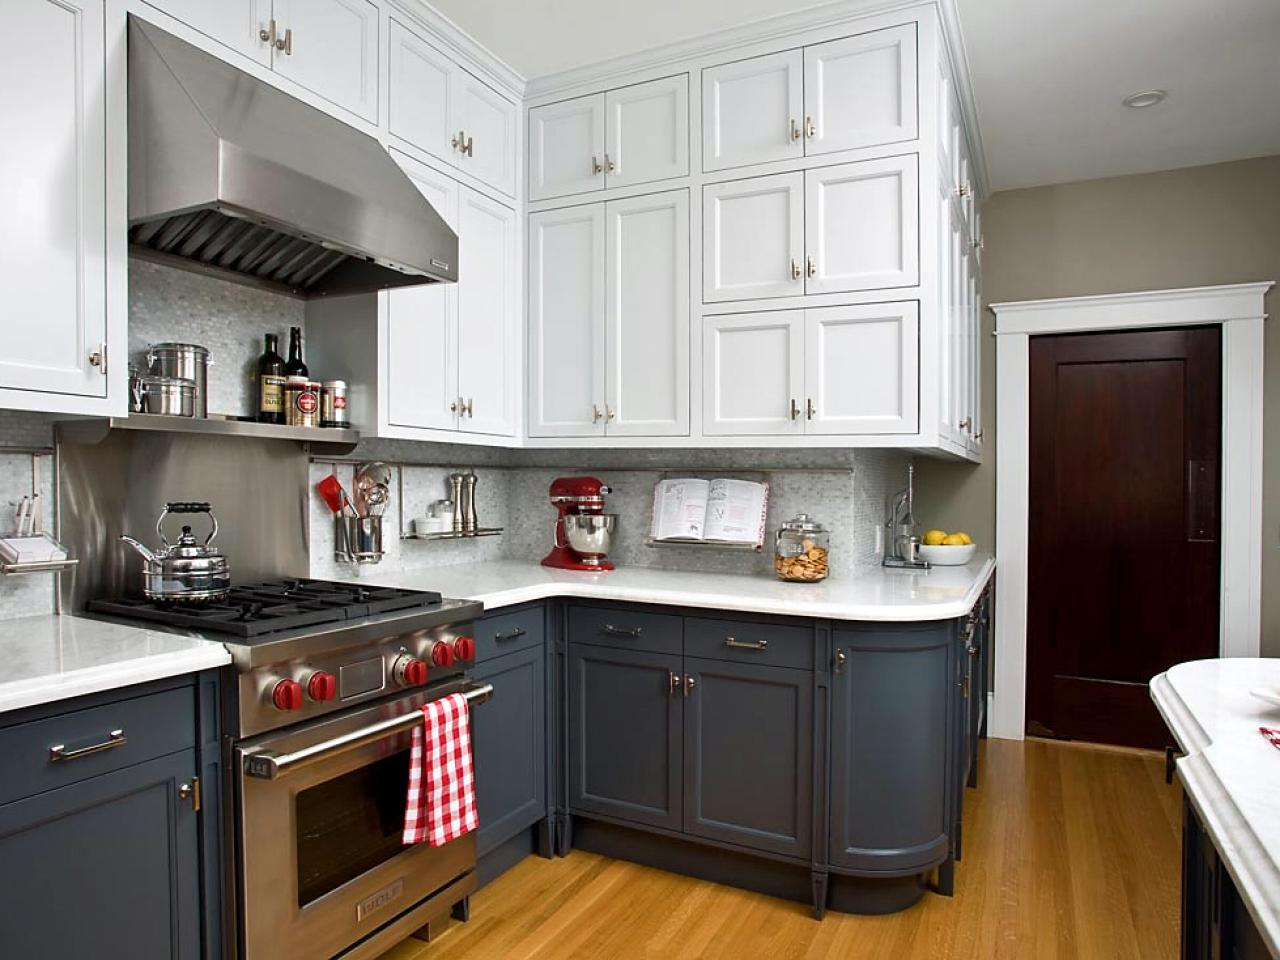 nice Different Color Cabinets In Kitchen #1: Two-Toned Kitchen Cabinets